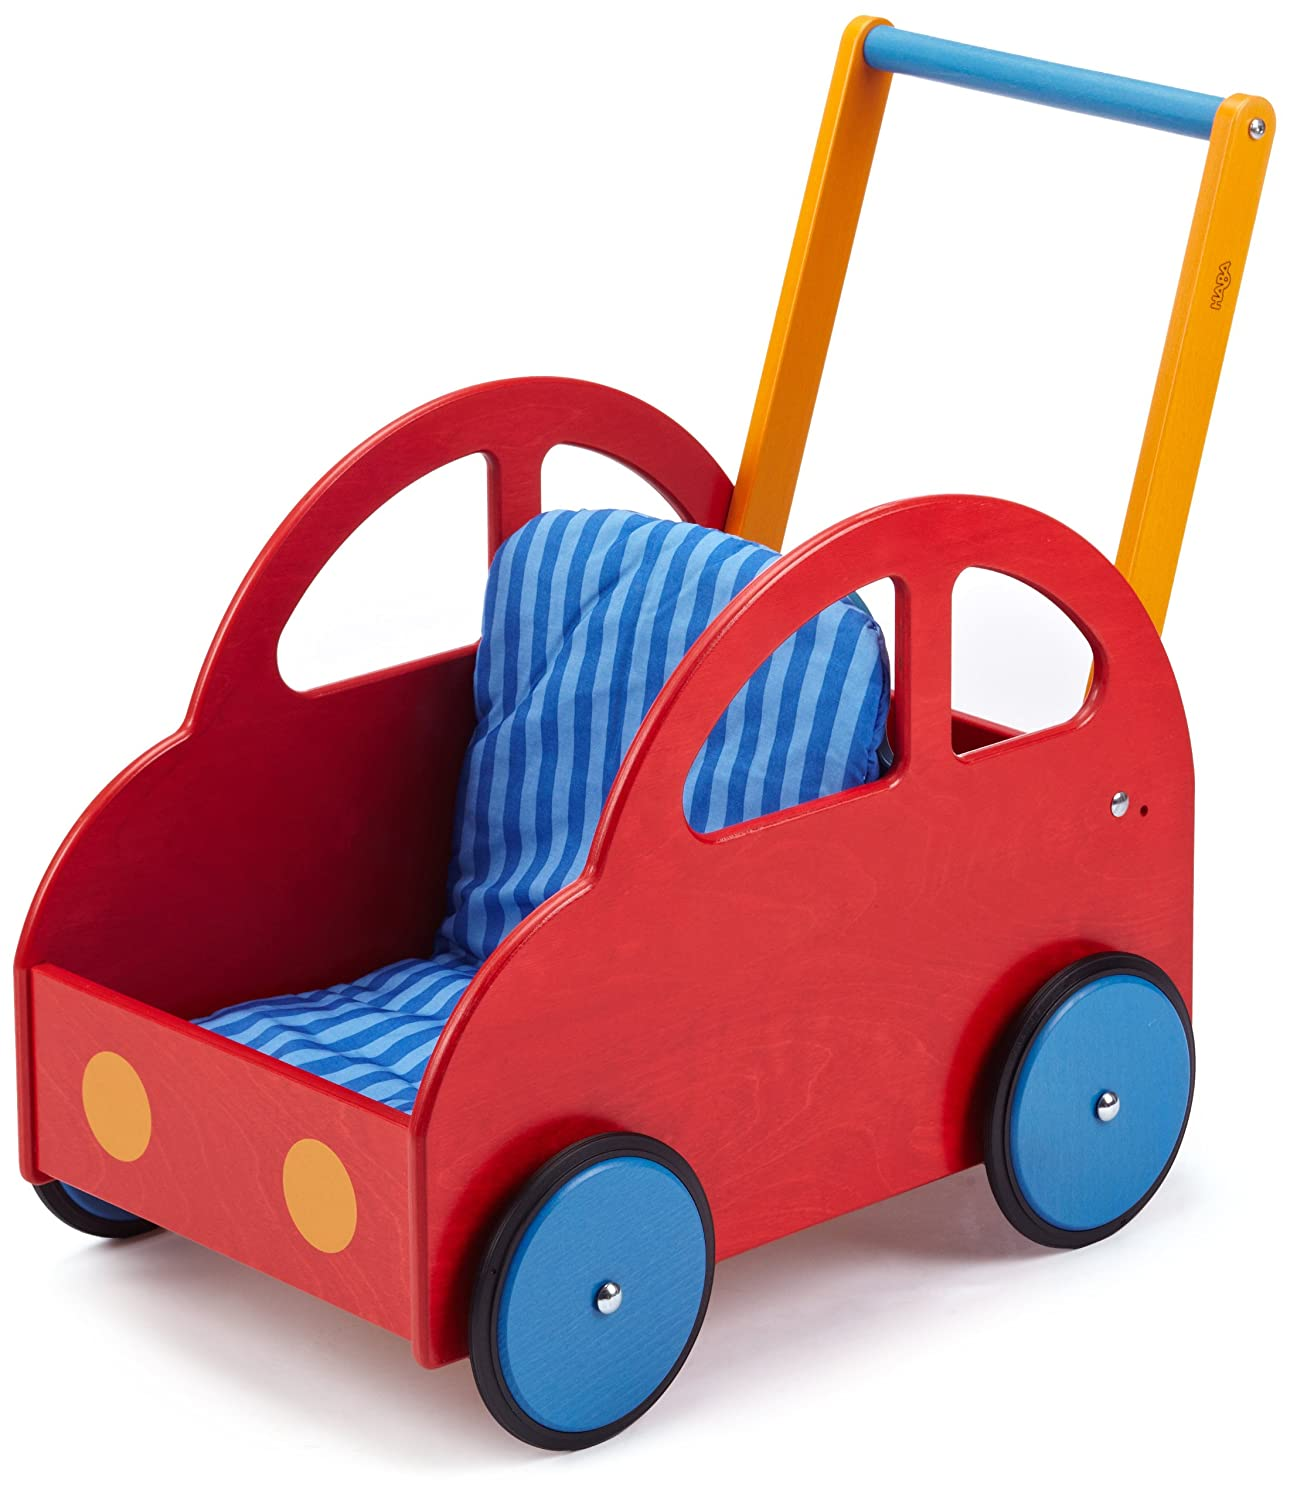 Red and blue wood push along car with handle. Adjustable height. Rubber wheels make it safe to use on hardwood floors